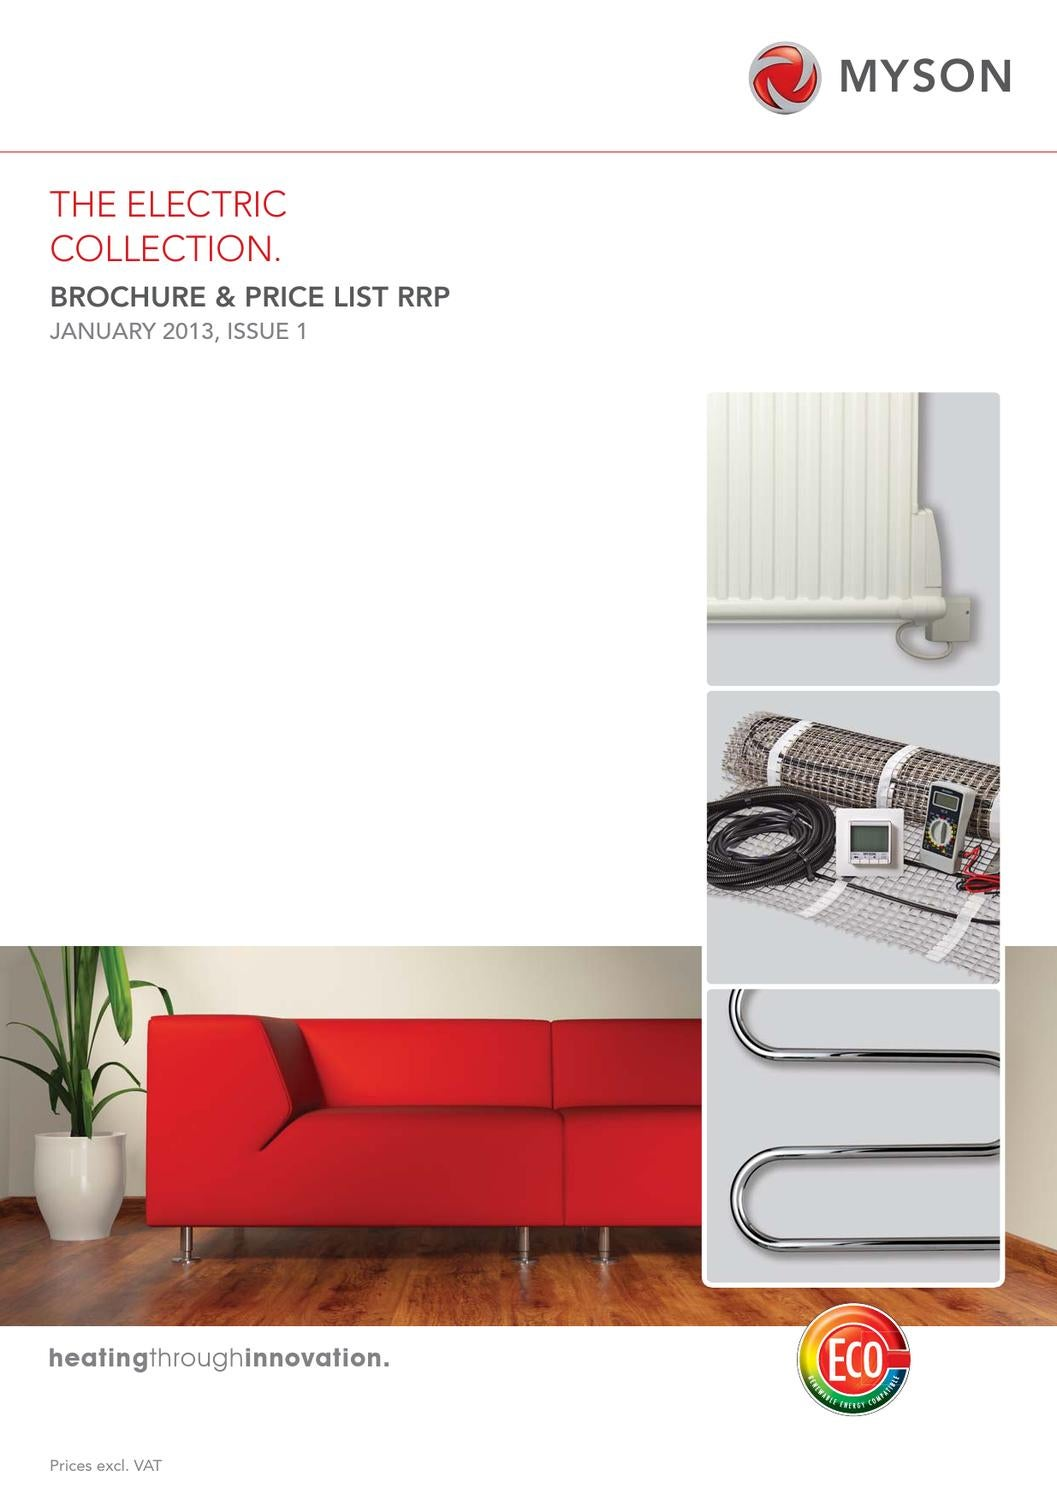 Myson Electric Collection Brochure And